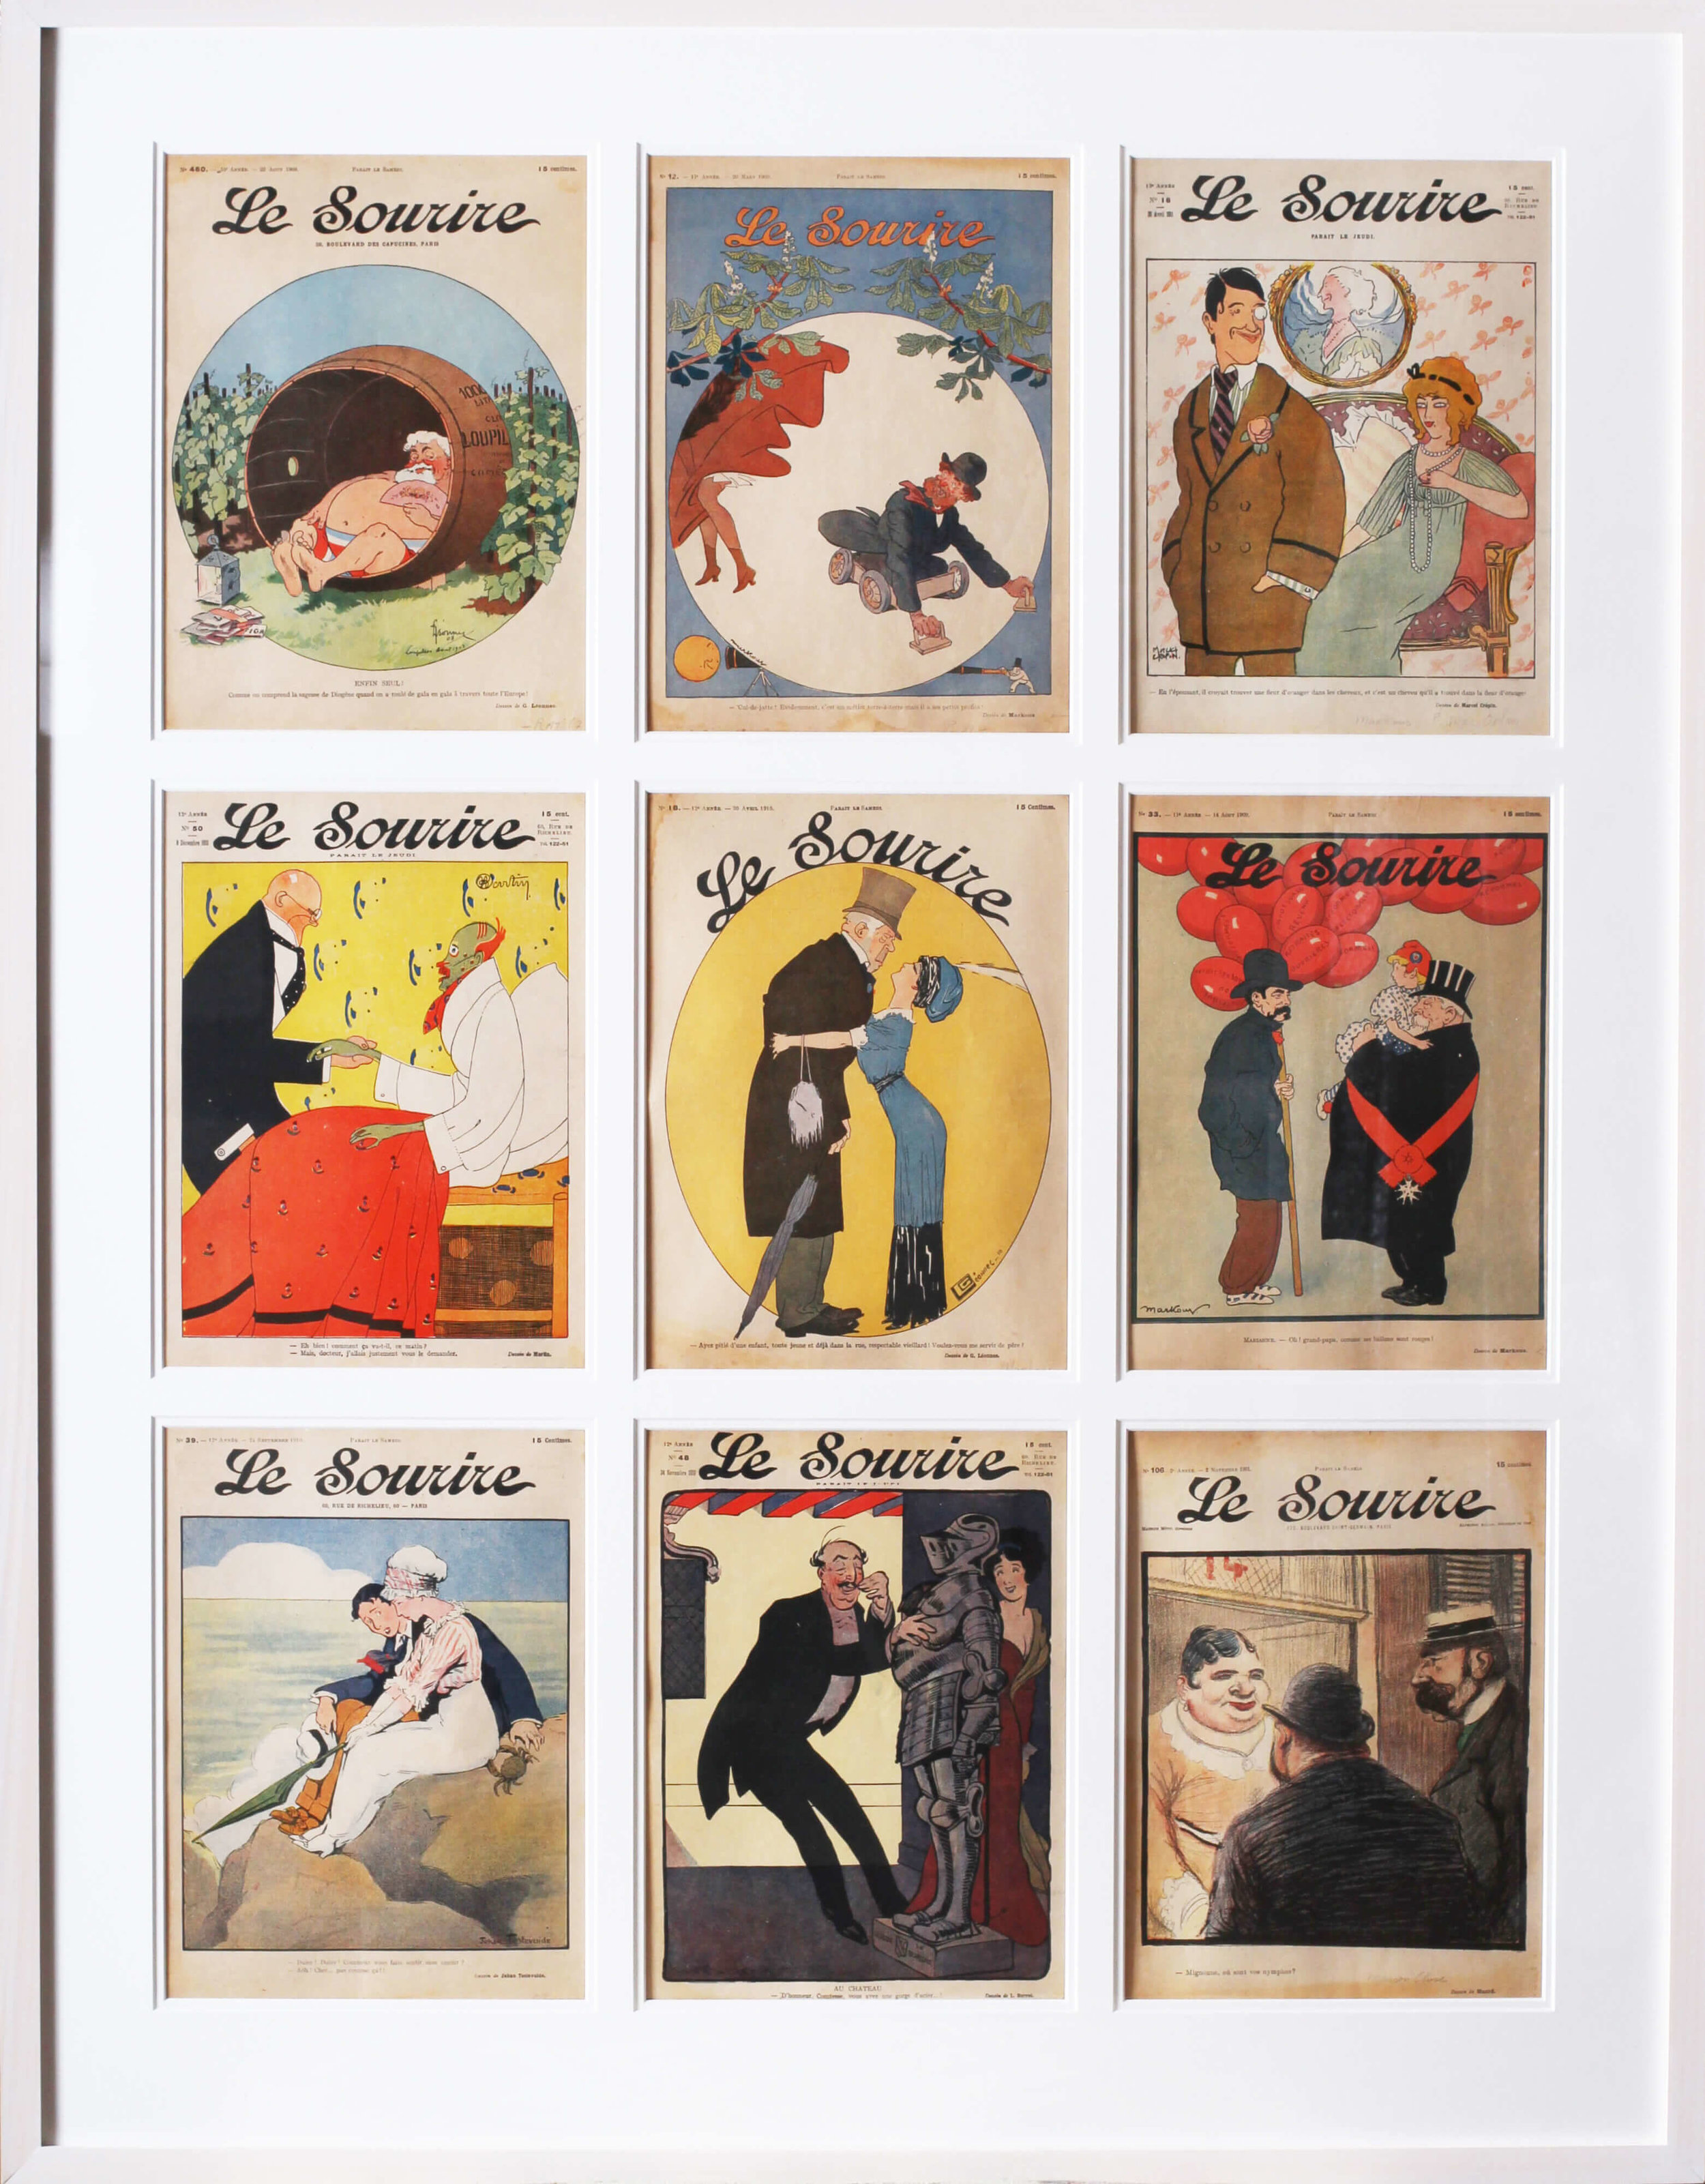 SET OF 9 ORIGINAL MAGAZINE COVERS FOR THE FRENCH BELLE EPOQUE PUBLICATION 'LE SOURIRE'  THESE ARE FROM 1901 – 1911 EDITION  114.3 X 89.2CM. (INCLUDING FRAME)  THERE IS A LITTLE BIT OF WATER STAINING TO THE UPPER LEFT AND THERE IS SLIGHT DIRT, OVERALL THE COLOURS ARE EXTREMELY STRONG.  THE PAPER REMAINS IN A SLIGHTLY FADED BUT AUTHENTIC STATE.   PRICE: £2000